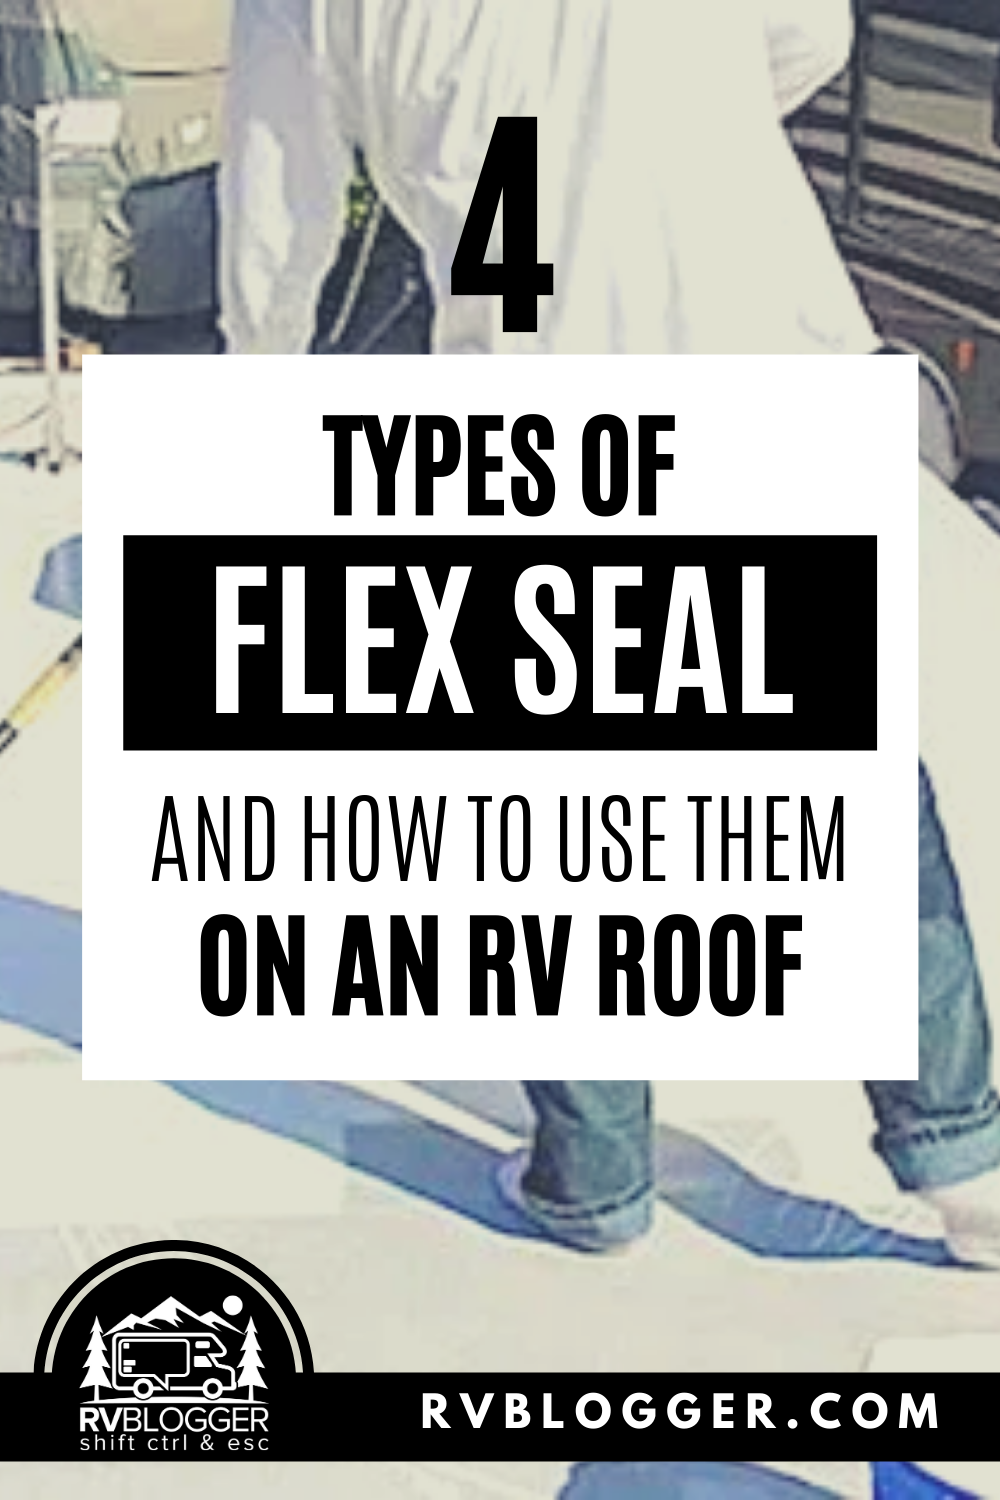 Can I Use Flex Seal On My Rv Roof Rvblogger In 2020 Roof Repair Rv Diy Rv